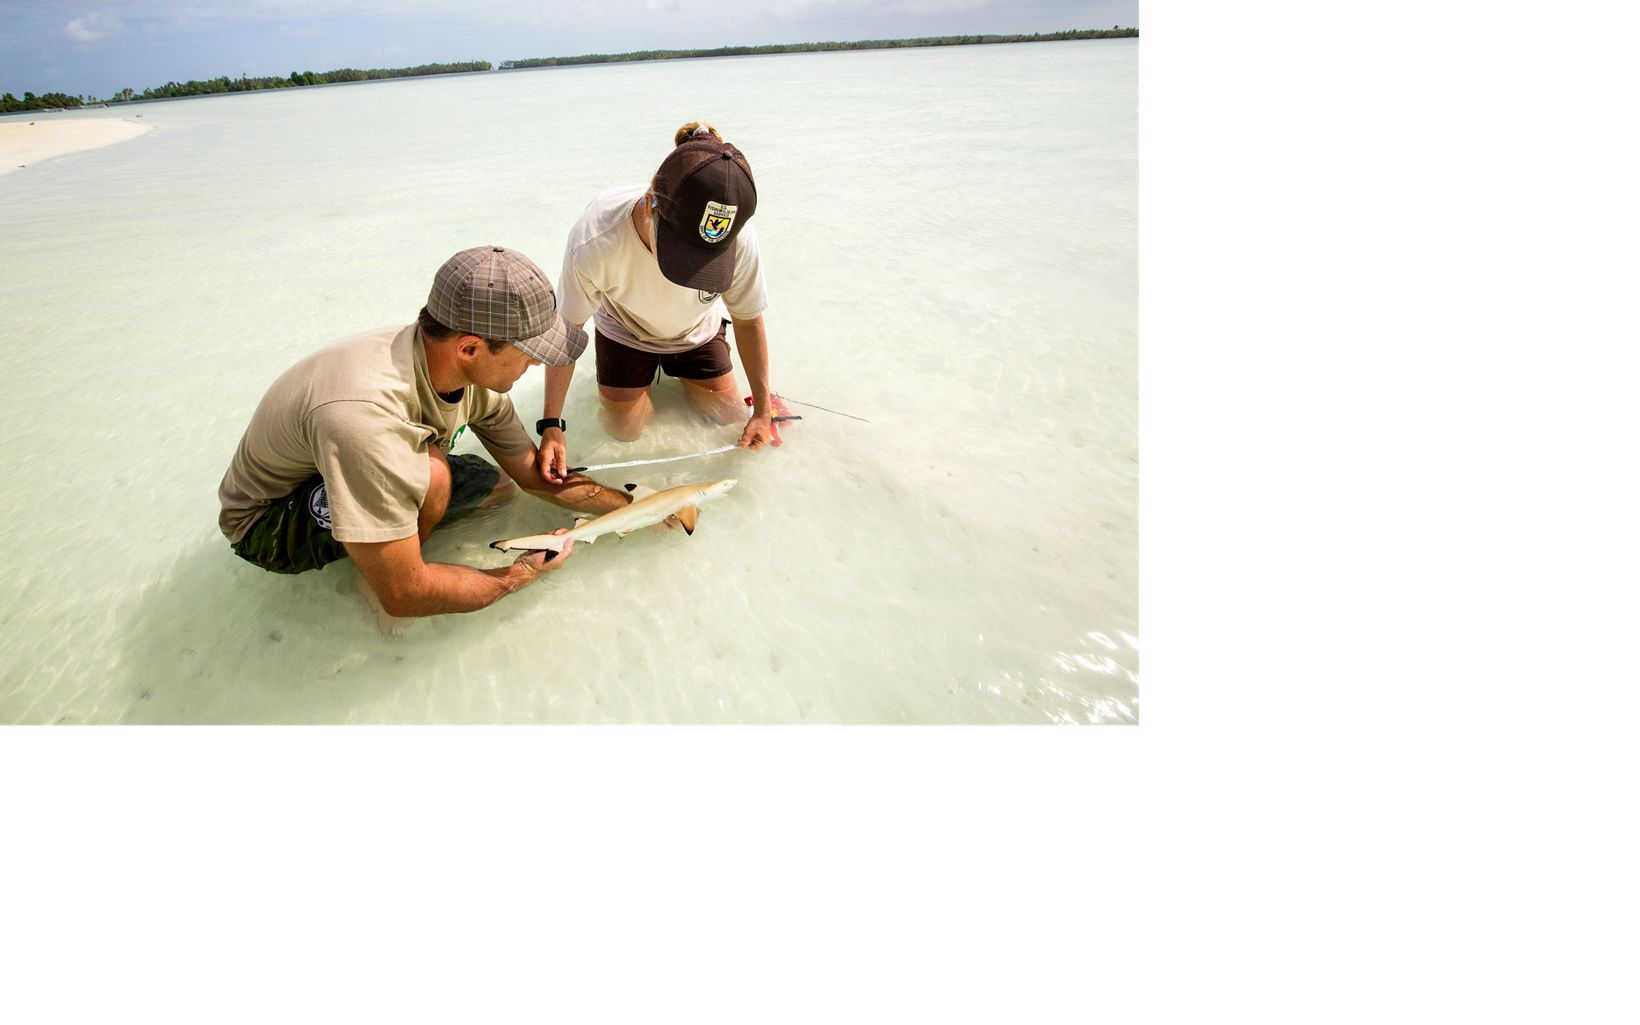 Conservancy staff Kydd Pollock and Amanda Meyer catch and measure a juvenile shark.